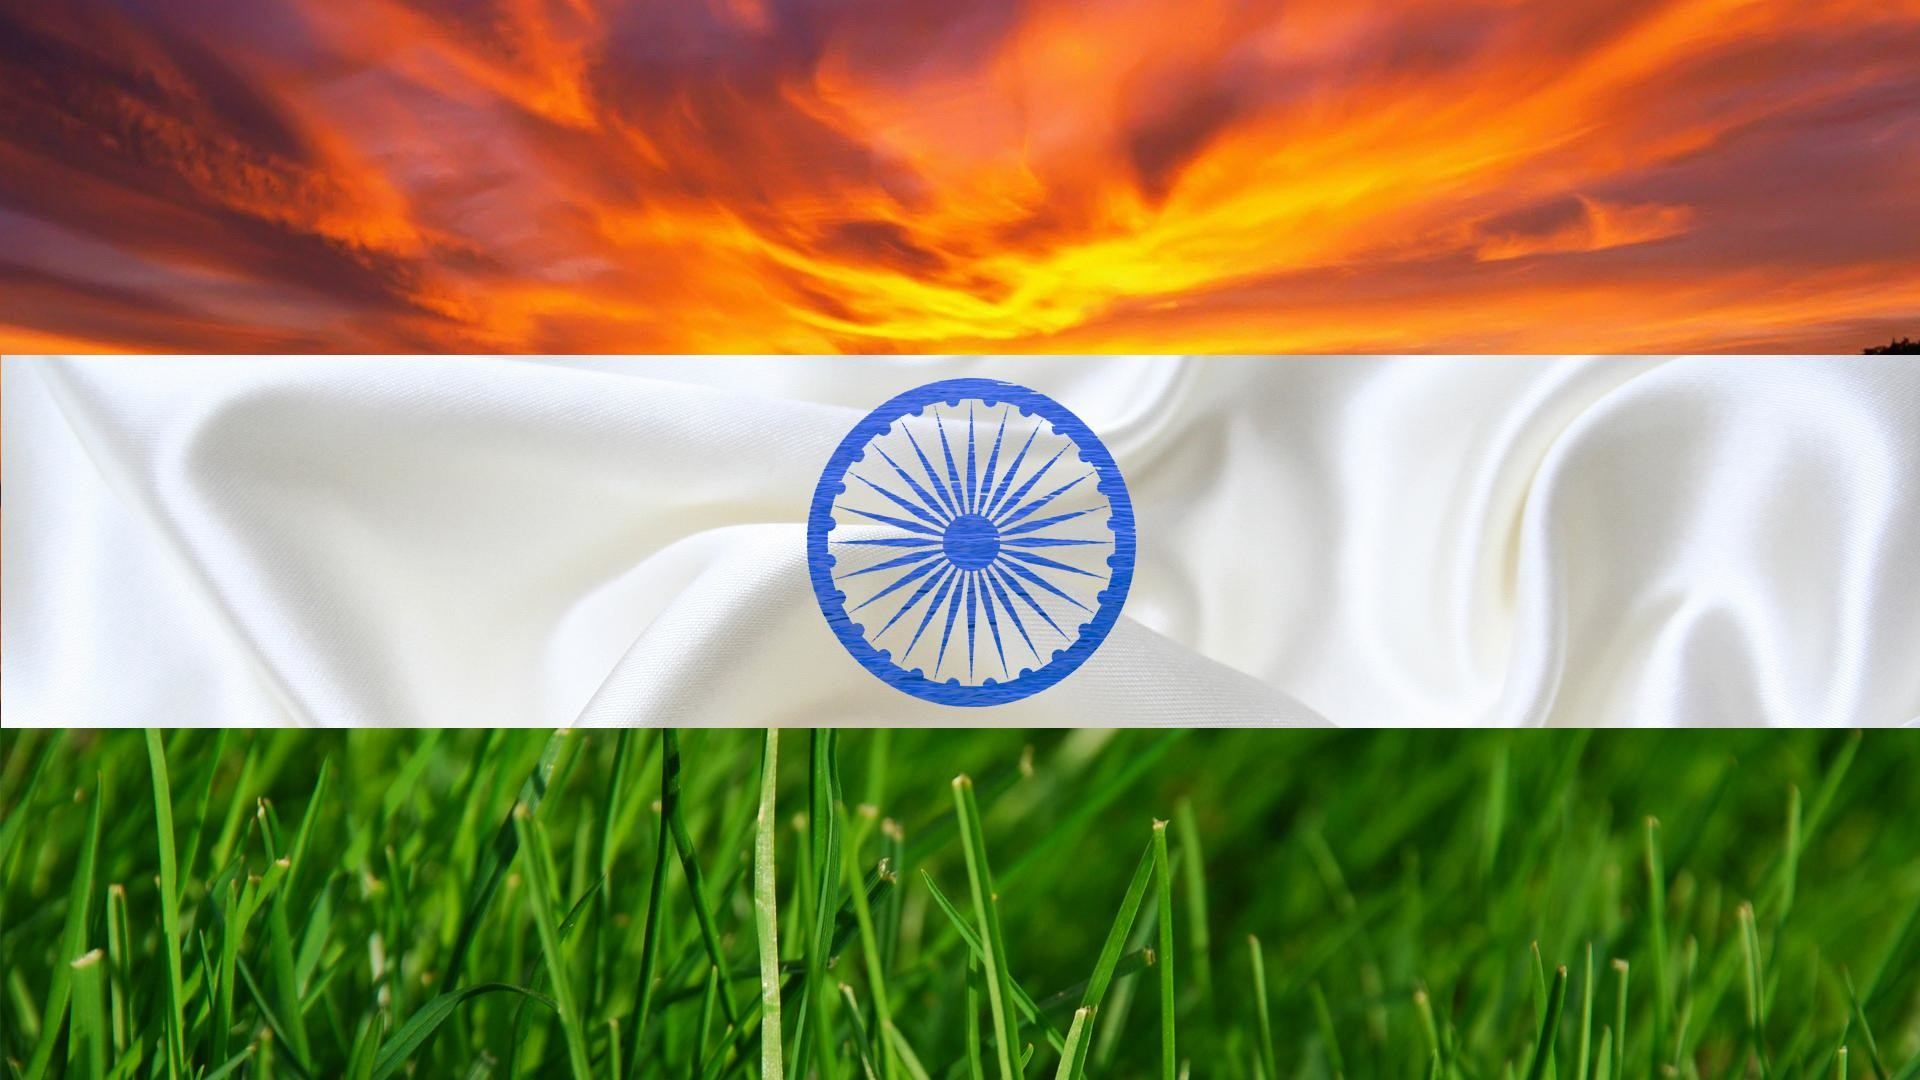 Indian Flag Hd Wallpaper: HD Wallpaper Of India (65+ Images